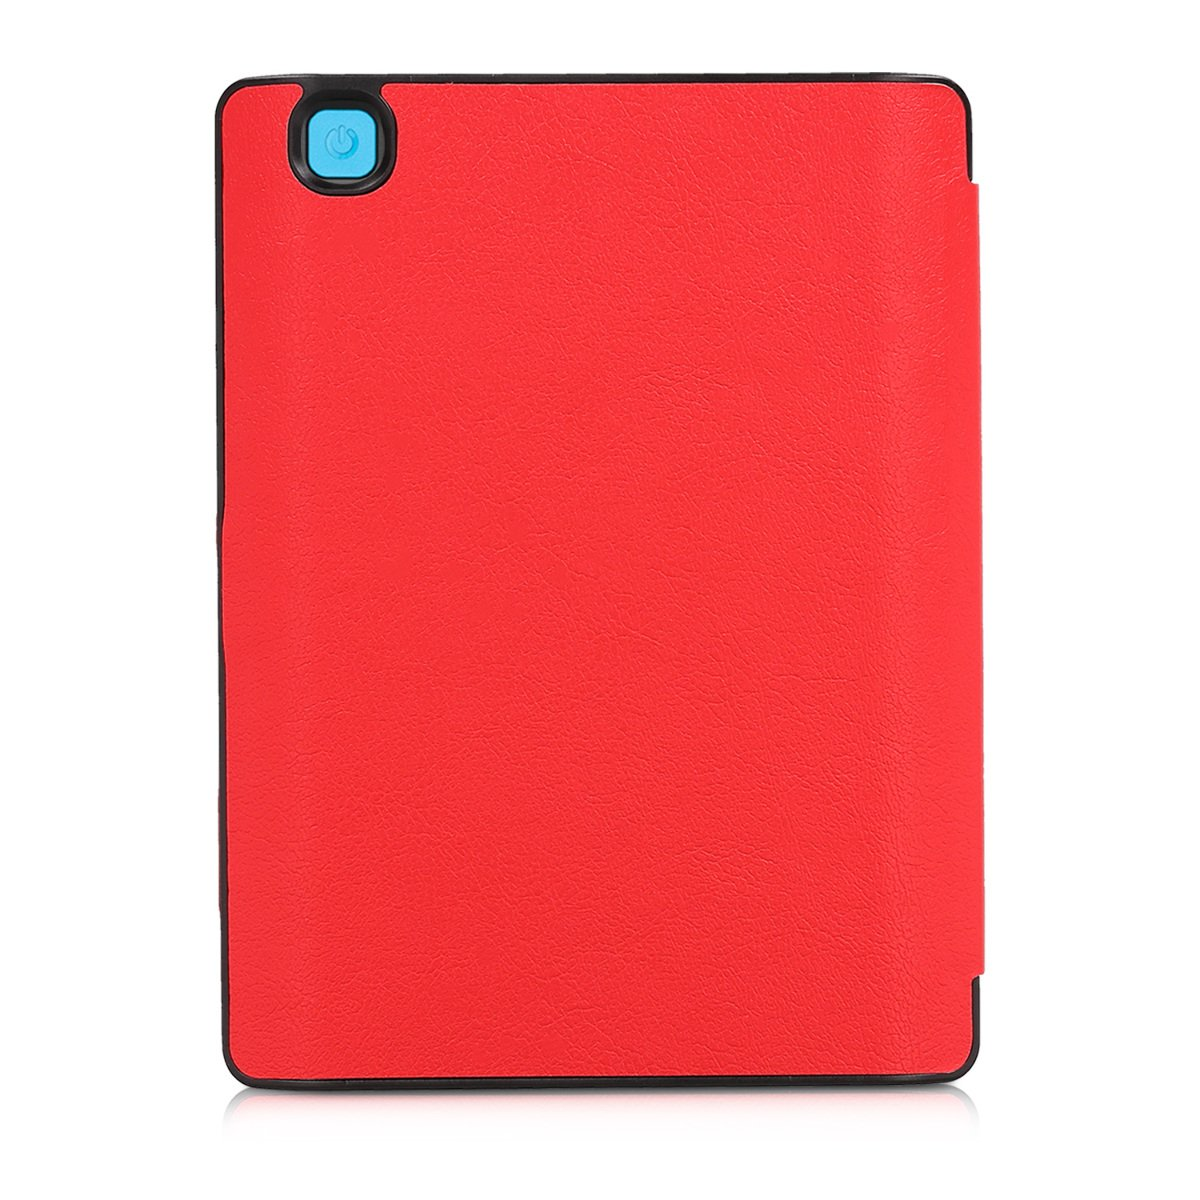 kwmobile Flip cover case for Kobo Aura H2O Edition 2 - imitation leather foldable case in red by kwmobile (Image #4)